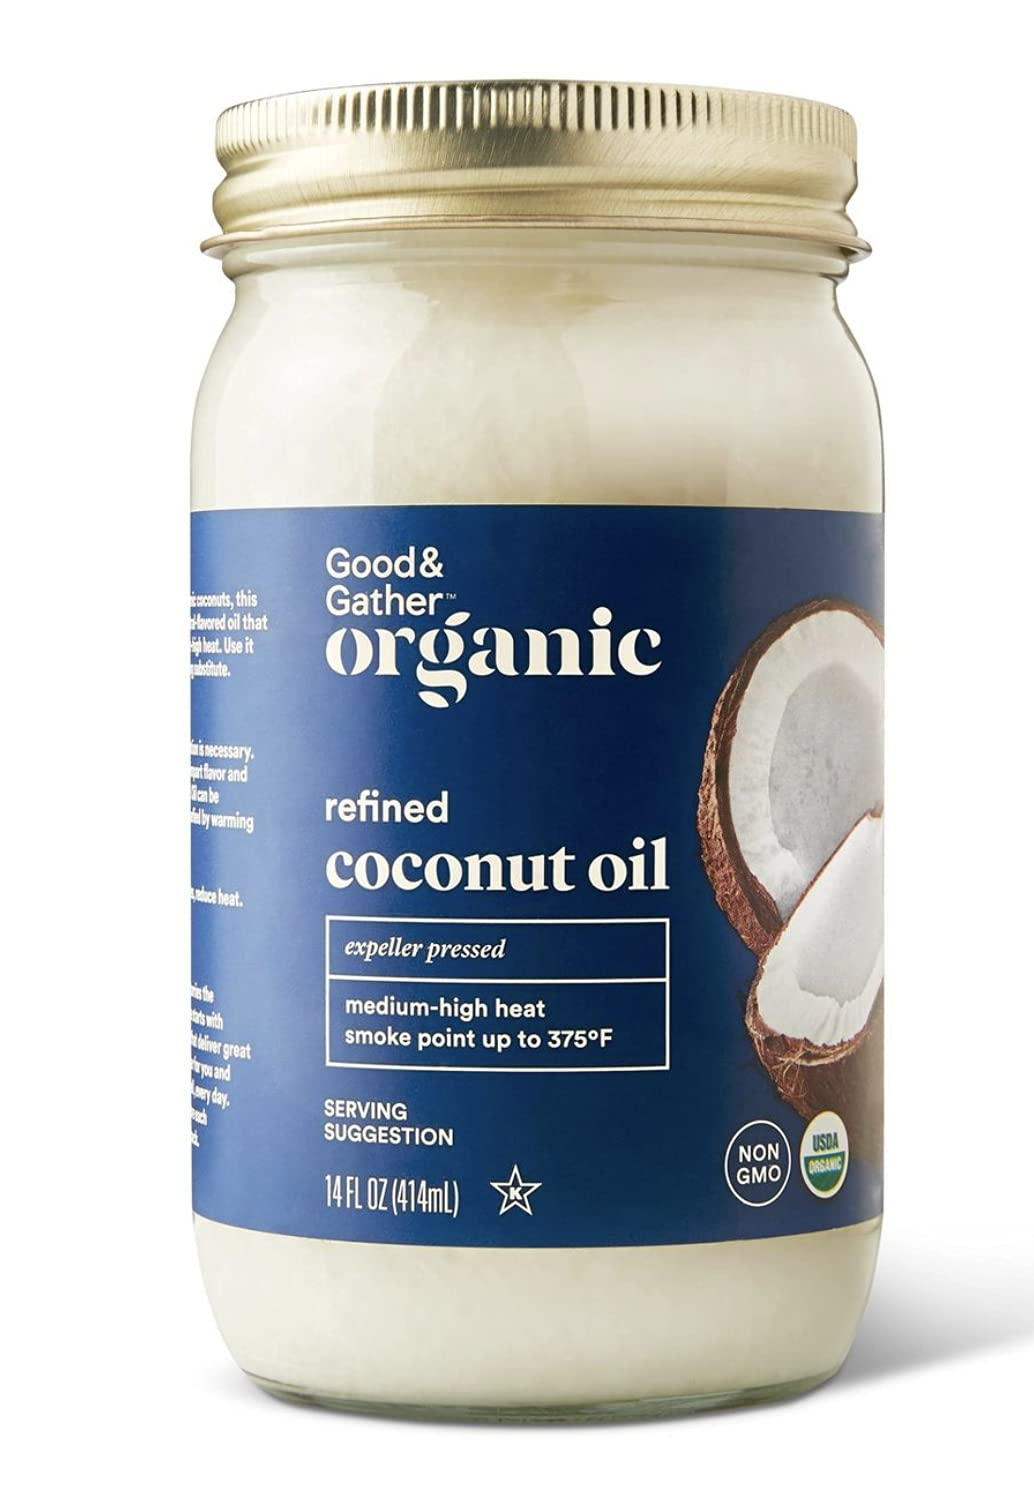 Good and Gather Organic Refined Coconut Oil, Expeller Pressed Pl